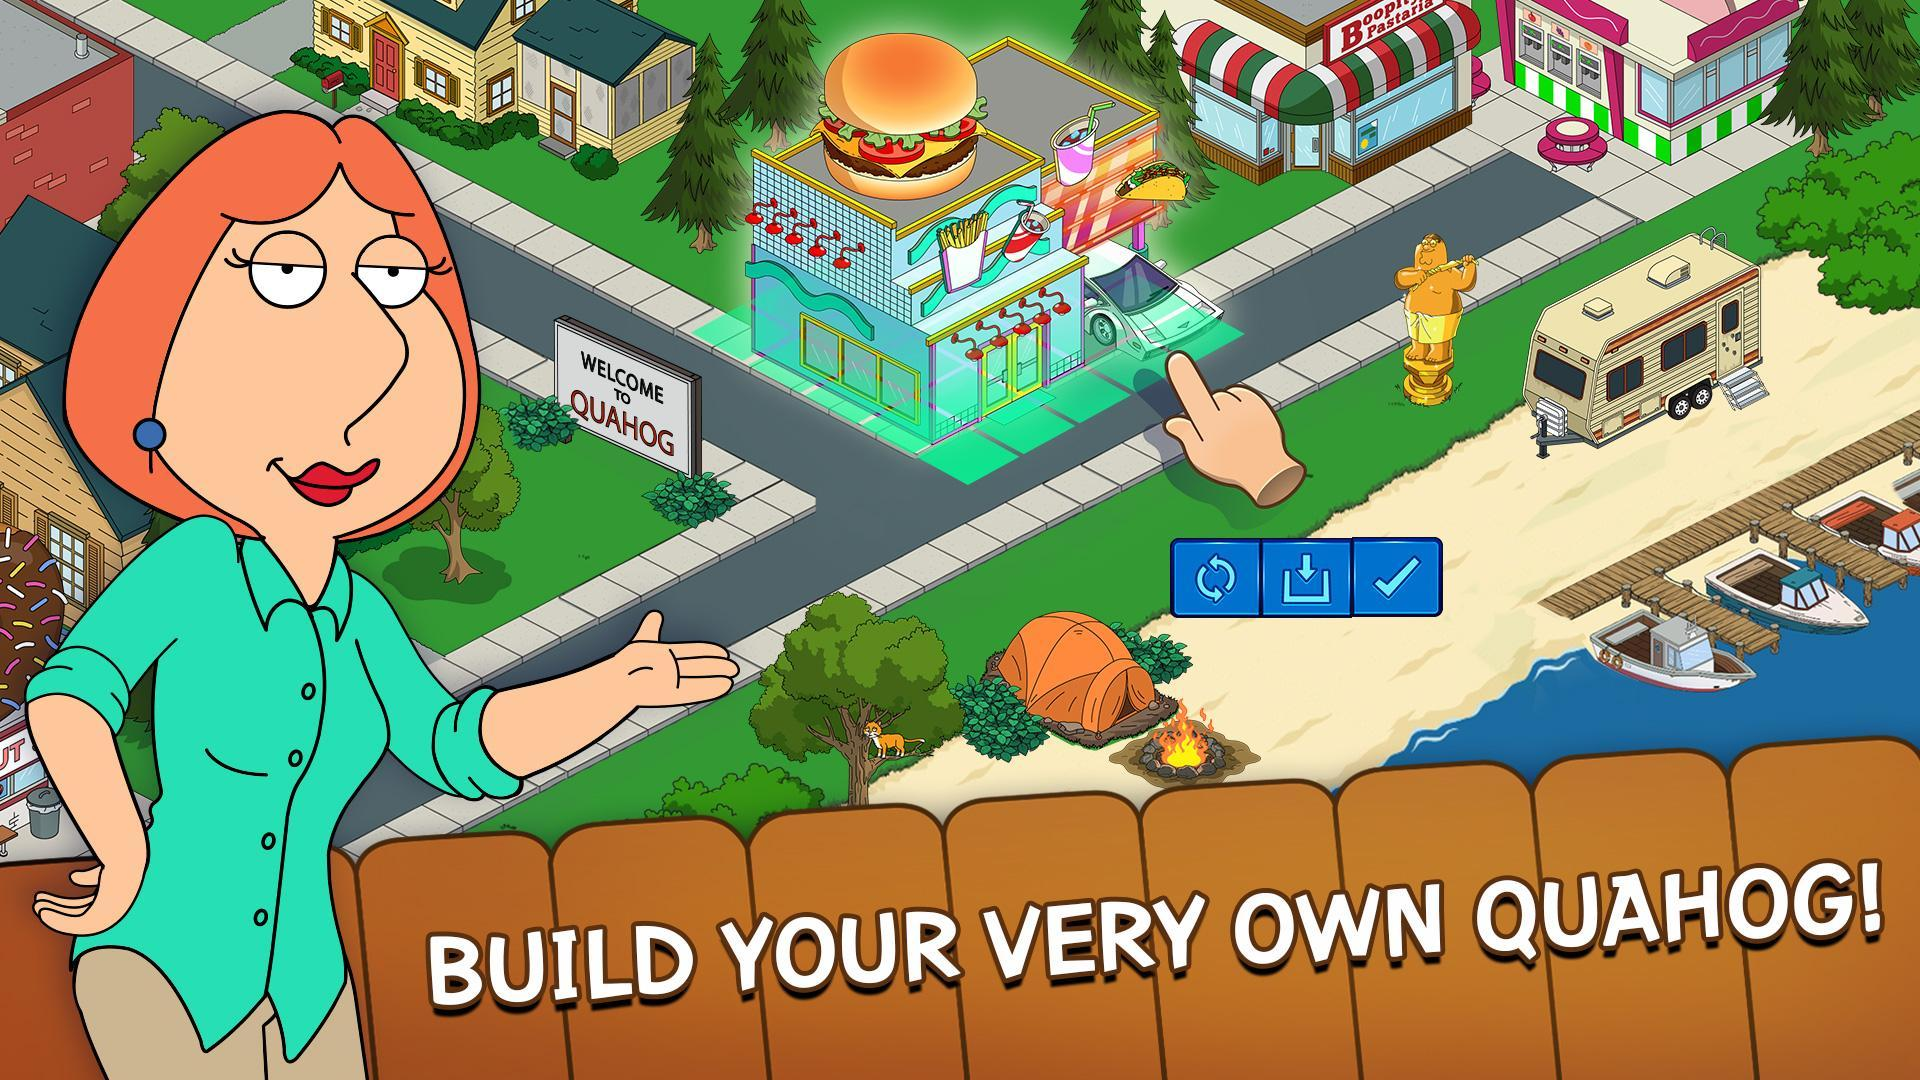 Family Guy The Quest for Stuff 3.8.1 Screenshot 13